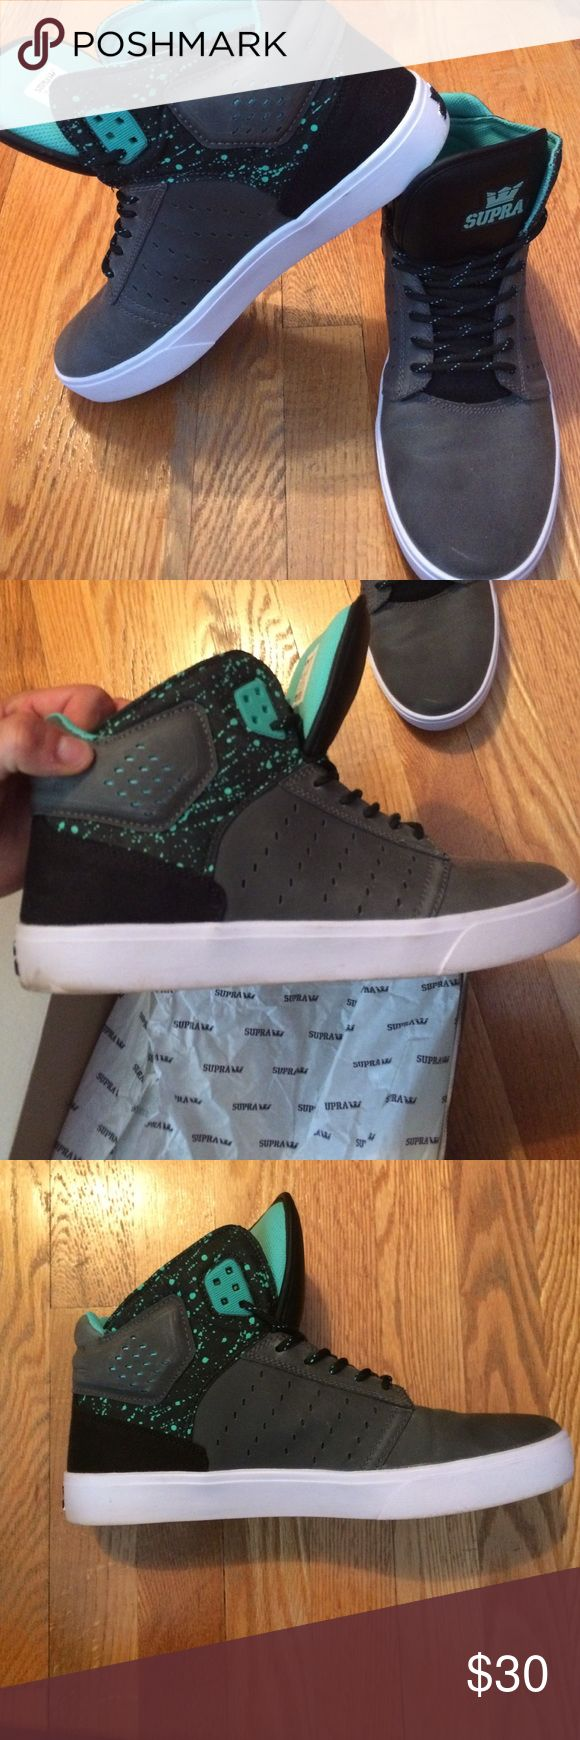 Men's Atom Supras Grey black-white with mint green accent. They have been worn once and have slight dirt marks on the bottom of the shoe (white part) but it can be cleaned. They are in great condition but do not fit anymore. Supra Shoes Sneakers